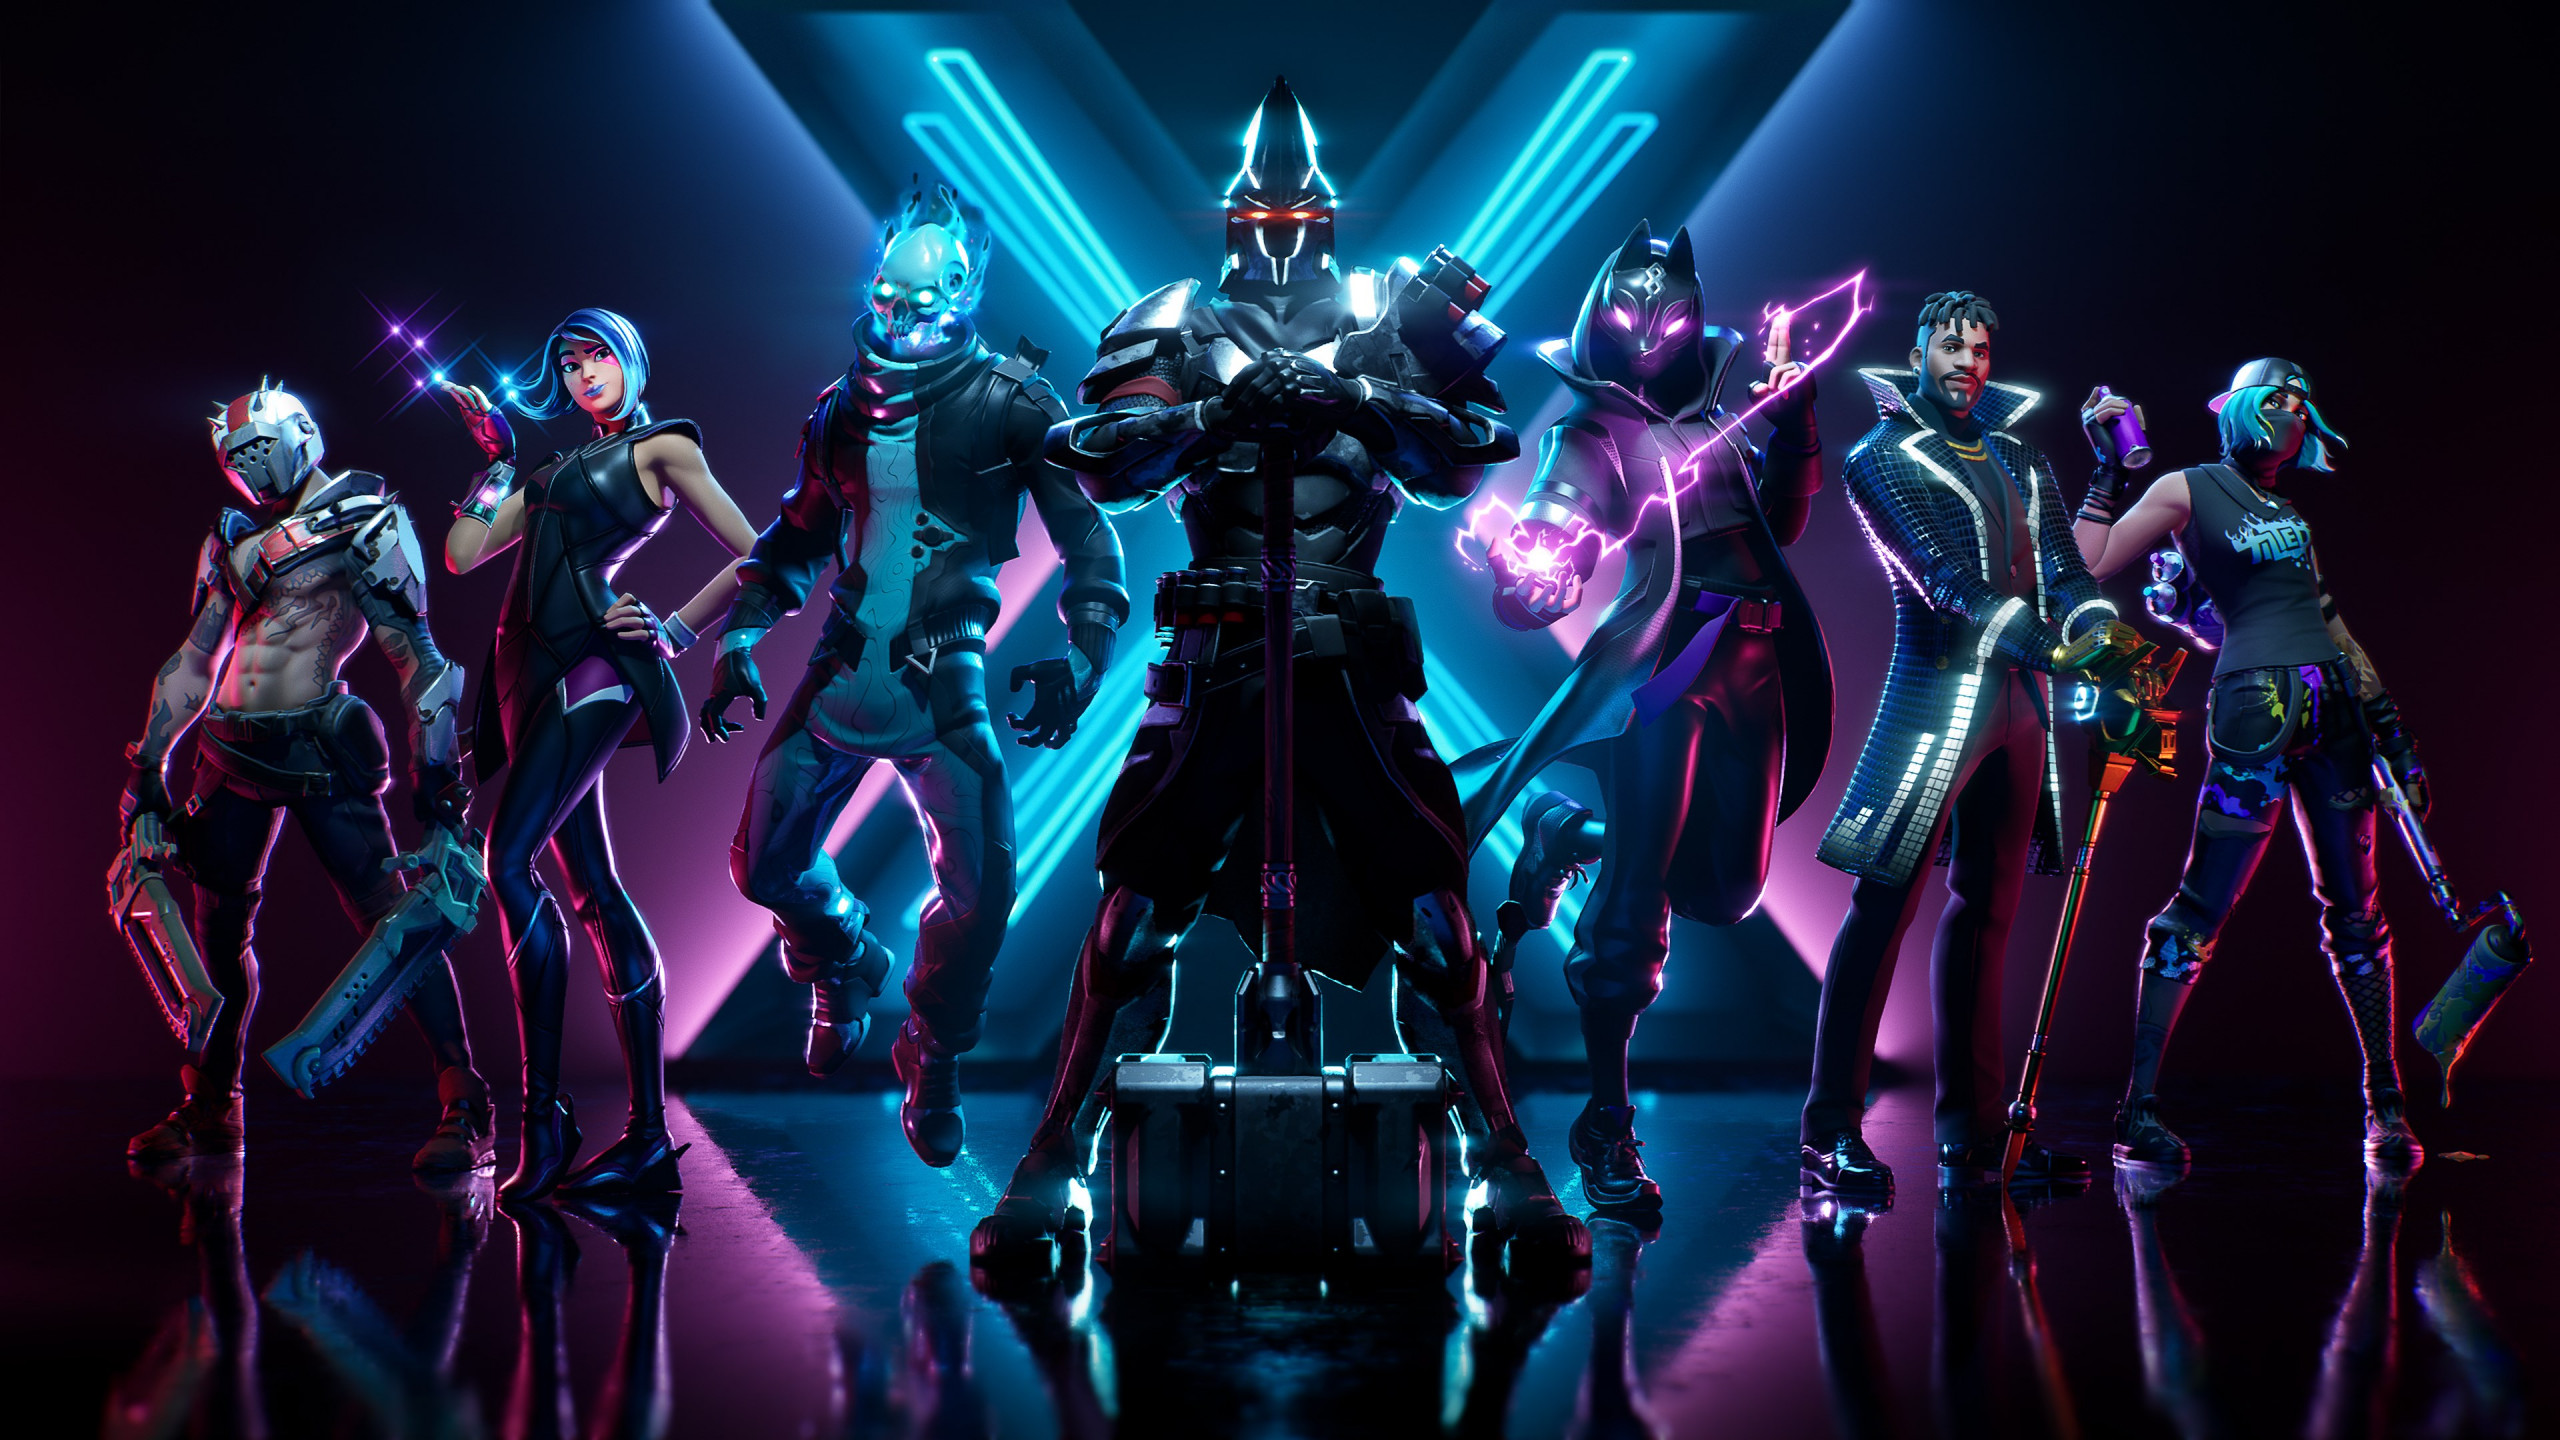 Download Wallpaper Fortnite Season X 2560x1440